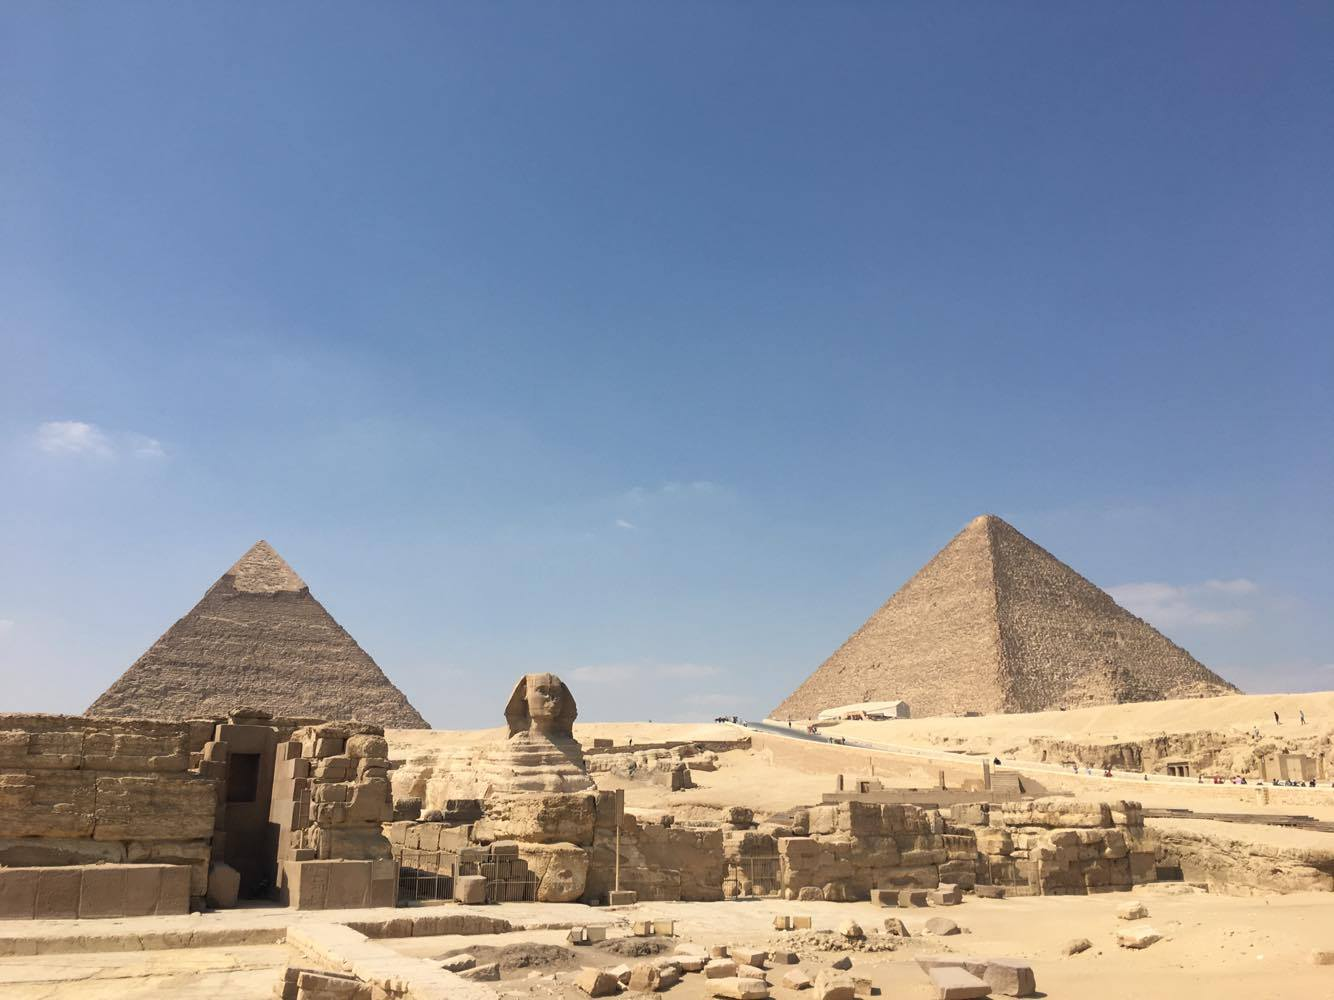 MY EXPERIENCE TAKING A TOUR THROUGH EGYPT